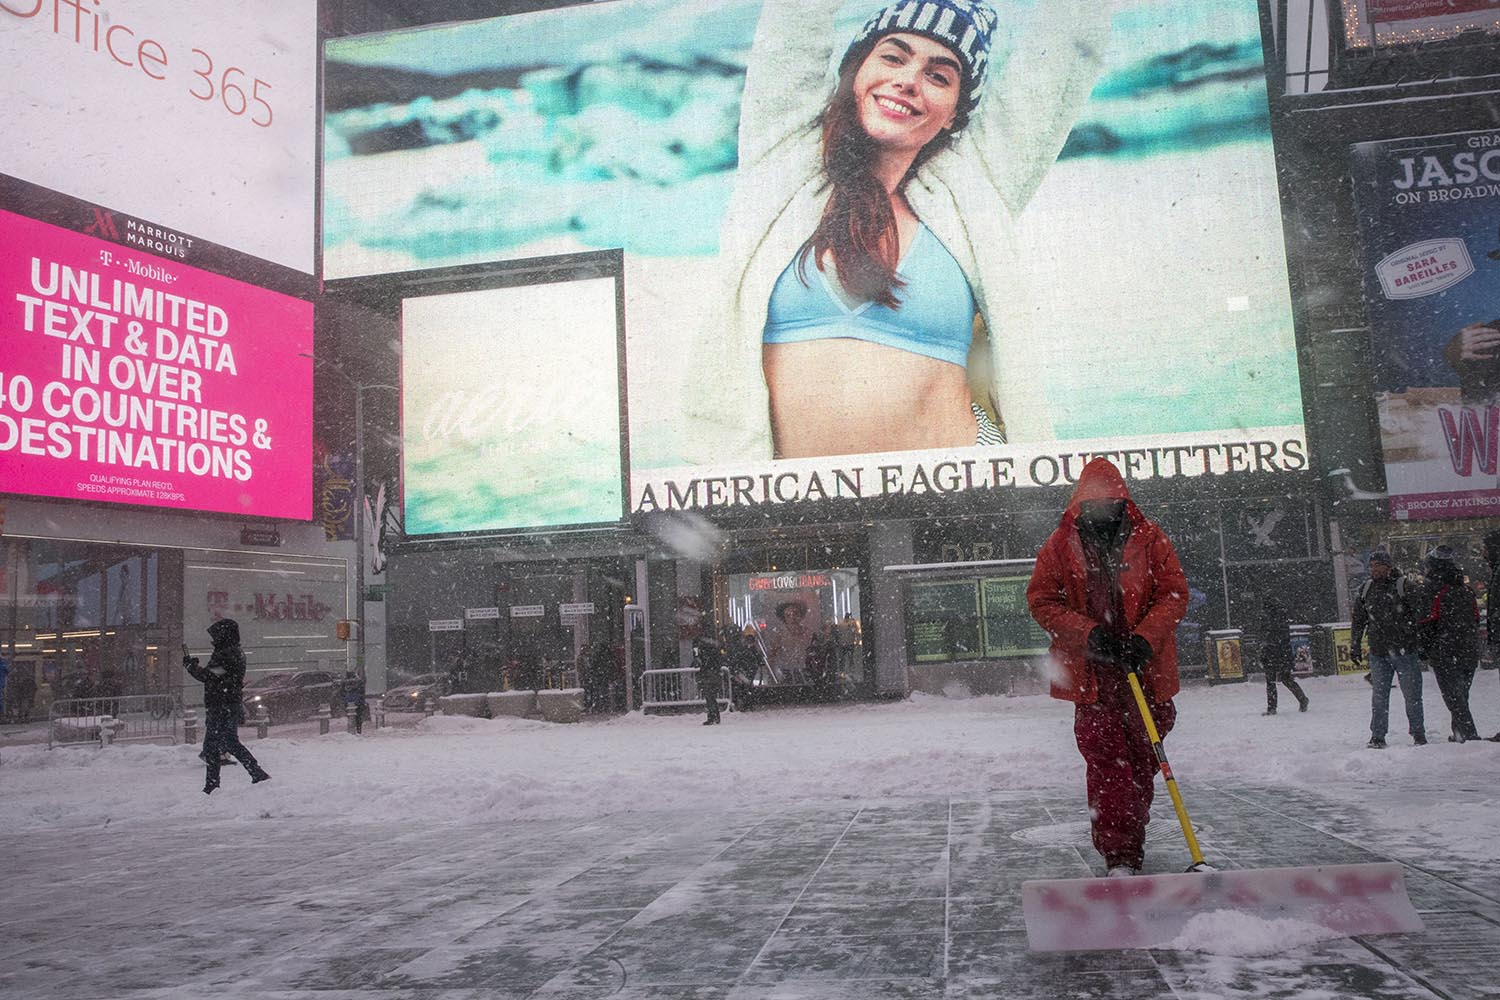 "<div class=""meta image-caption""><div class=""origin-logo origin-image ap""><span>AP</span></div><span class=""caption-text"">A worker with the Times Square alliance clears snow from the pedestrian walkway, Thursday, Jan. 4, 2018, in New York's Times Square. (AP Photo/Mary Altaffer)</span></div>"